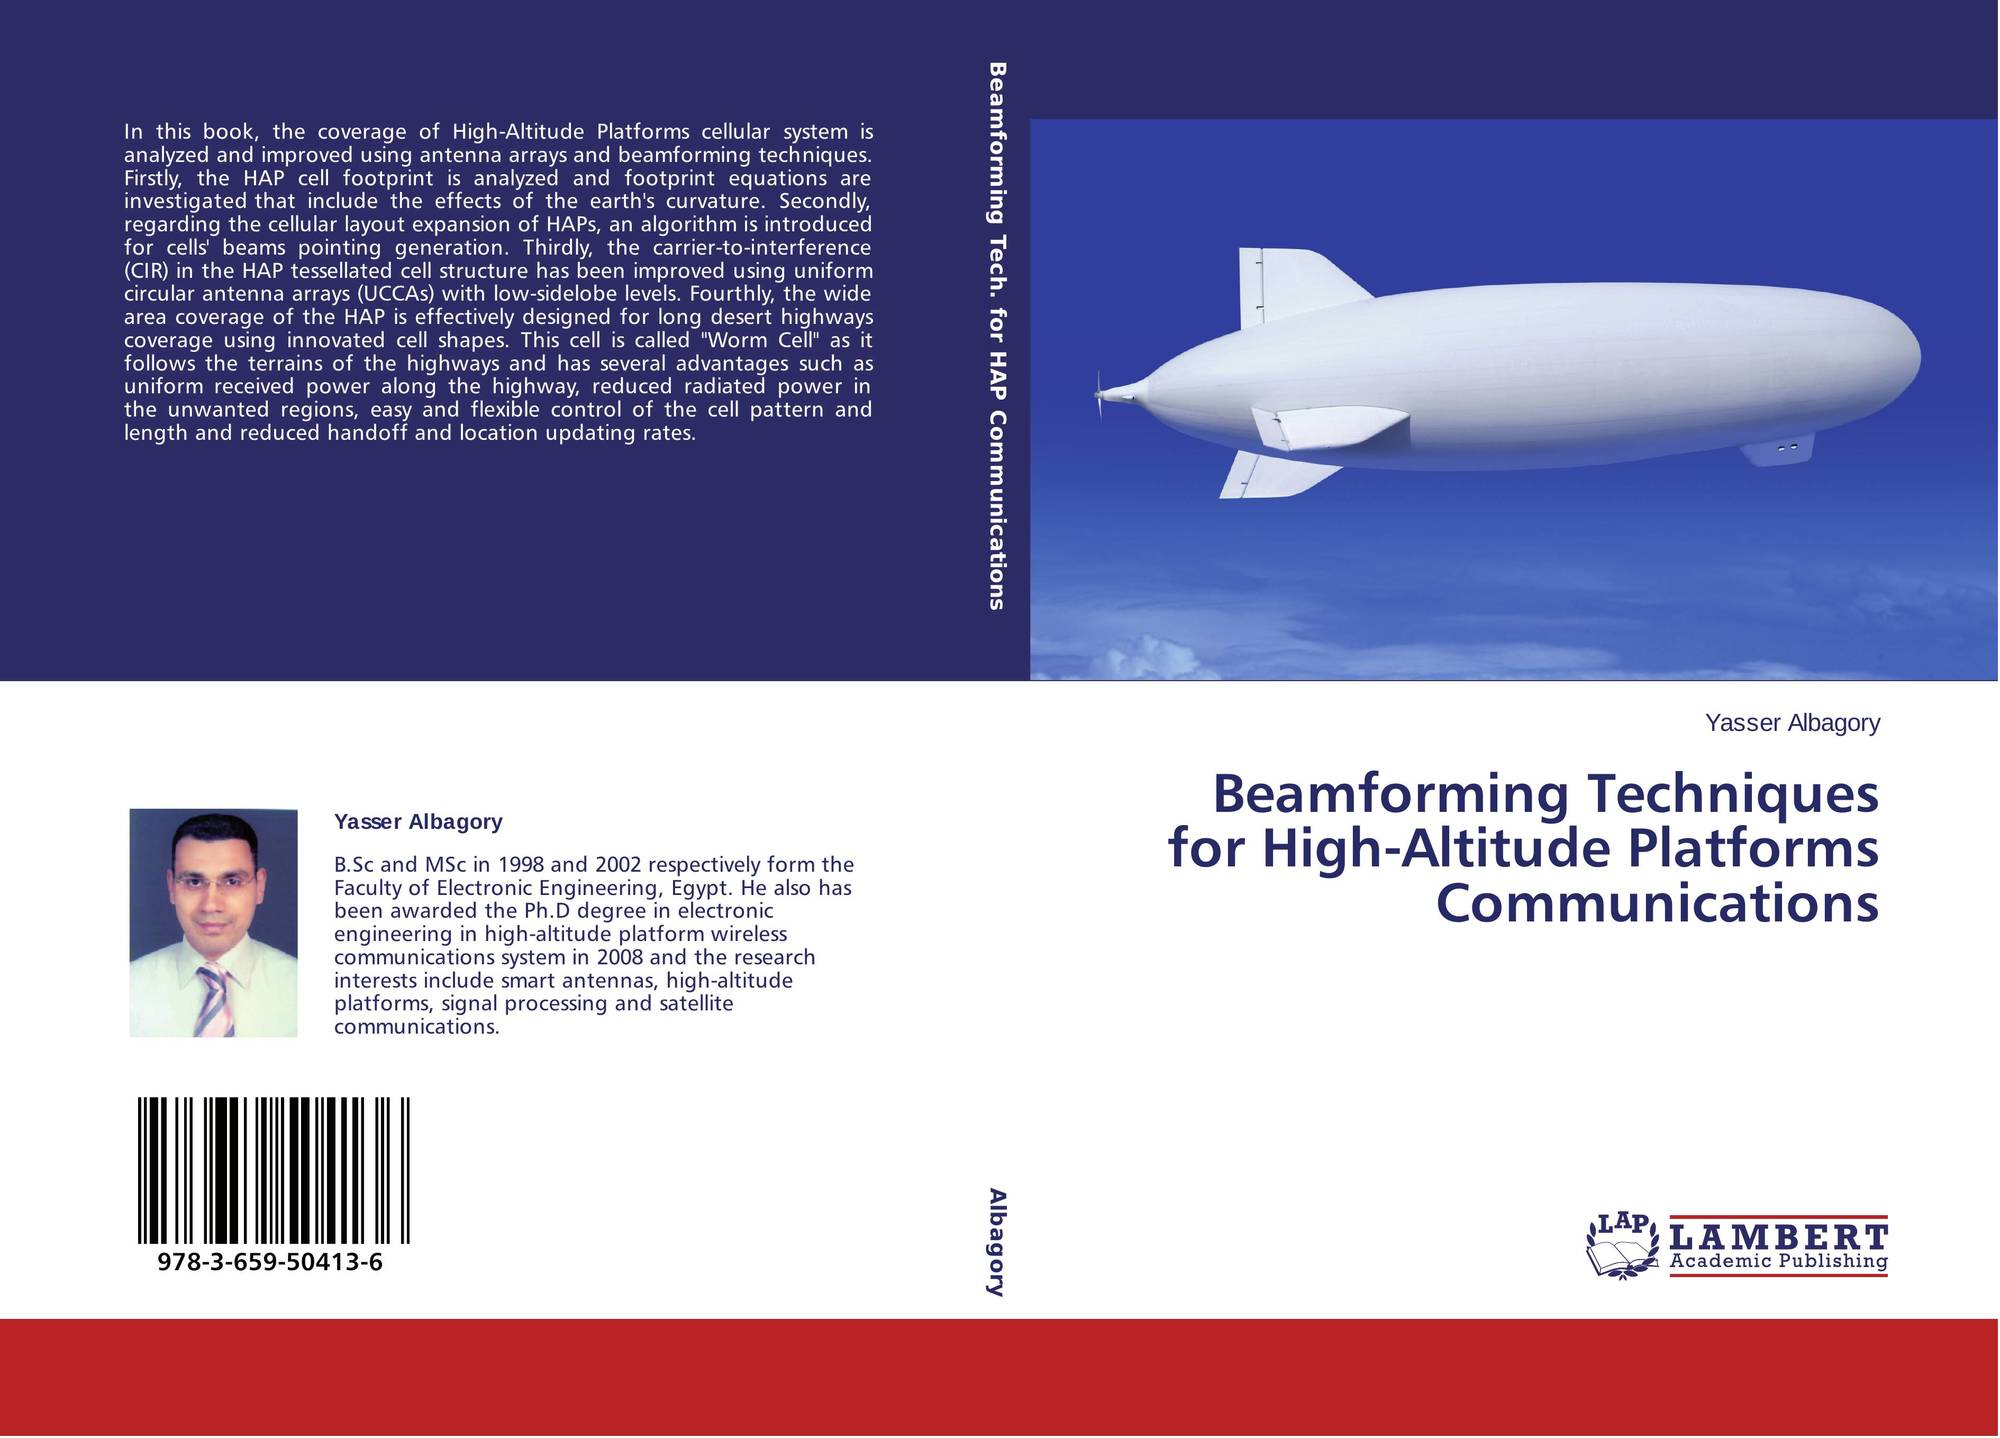 Beamforming Techniques for High-Altitude Platforms